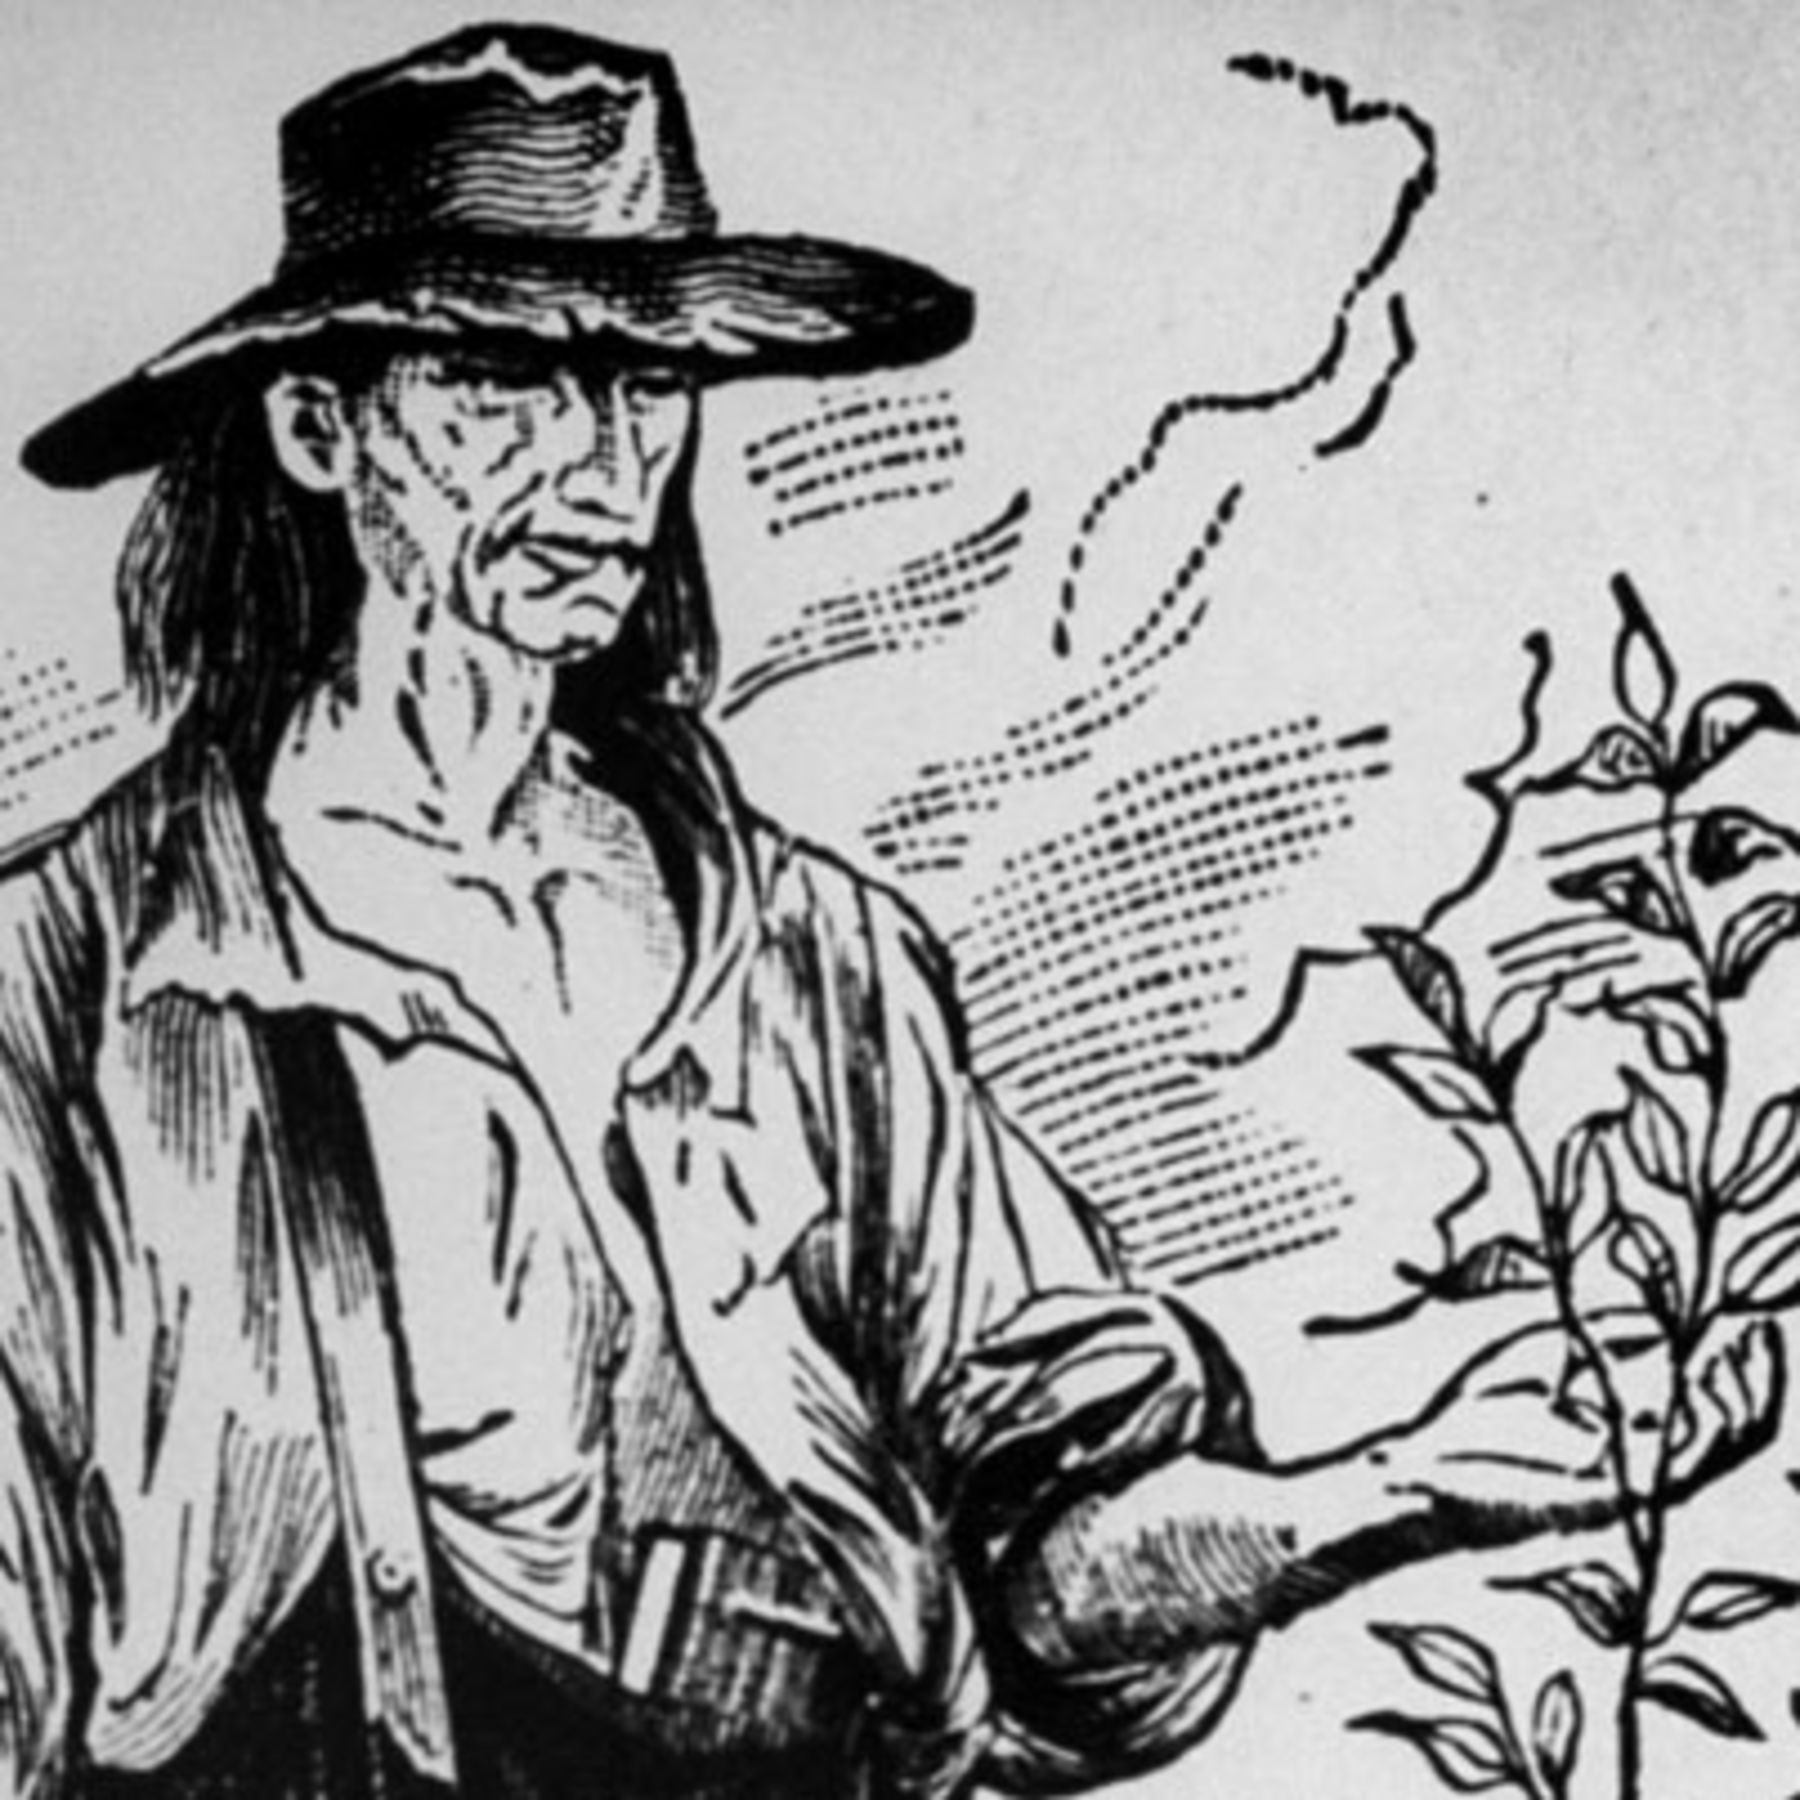 Johnny Appleseed Is A Folk Hero Based On Frontier